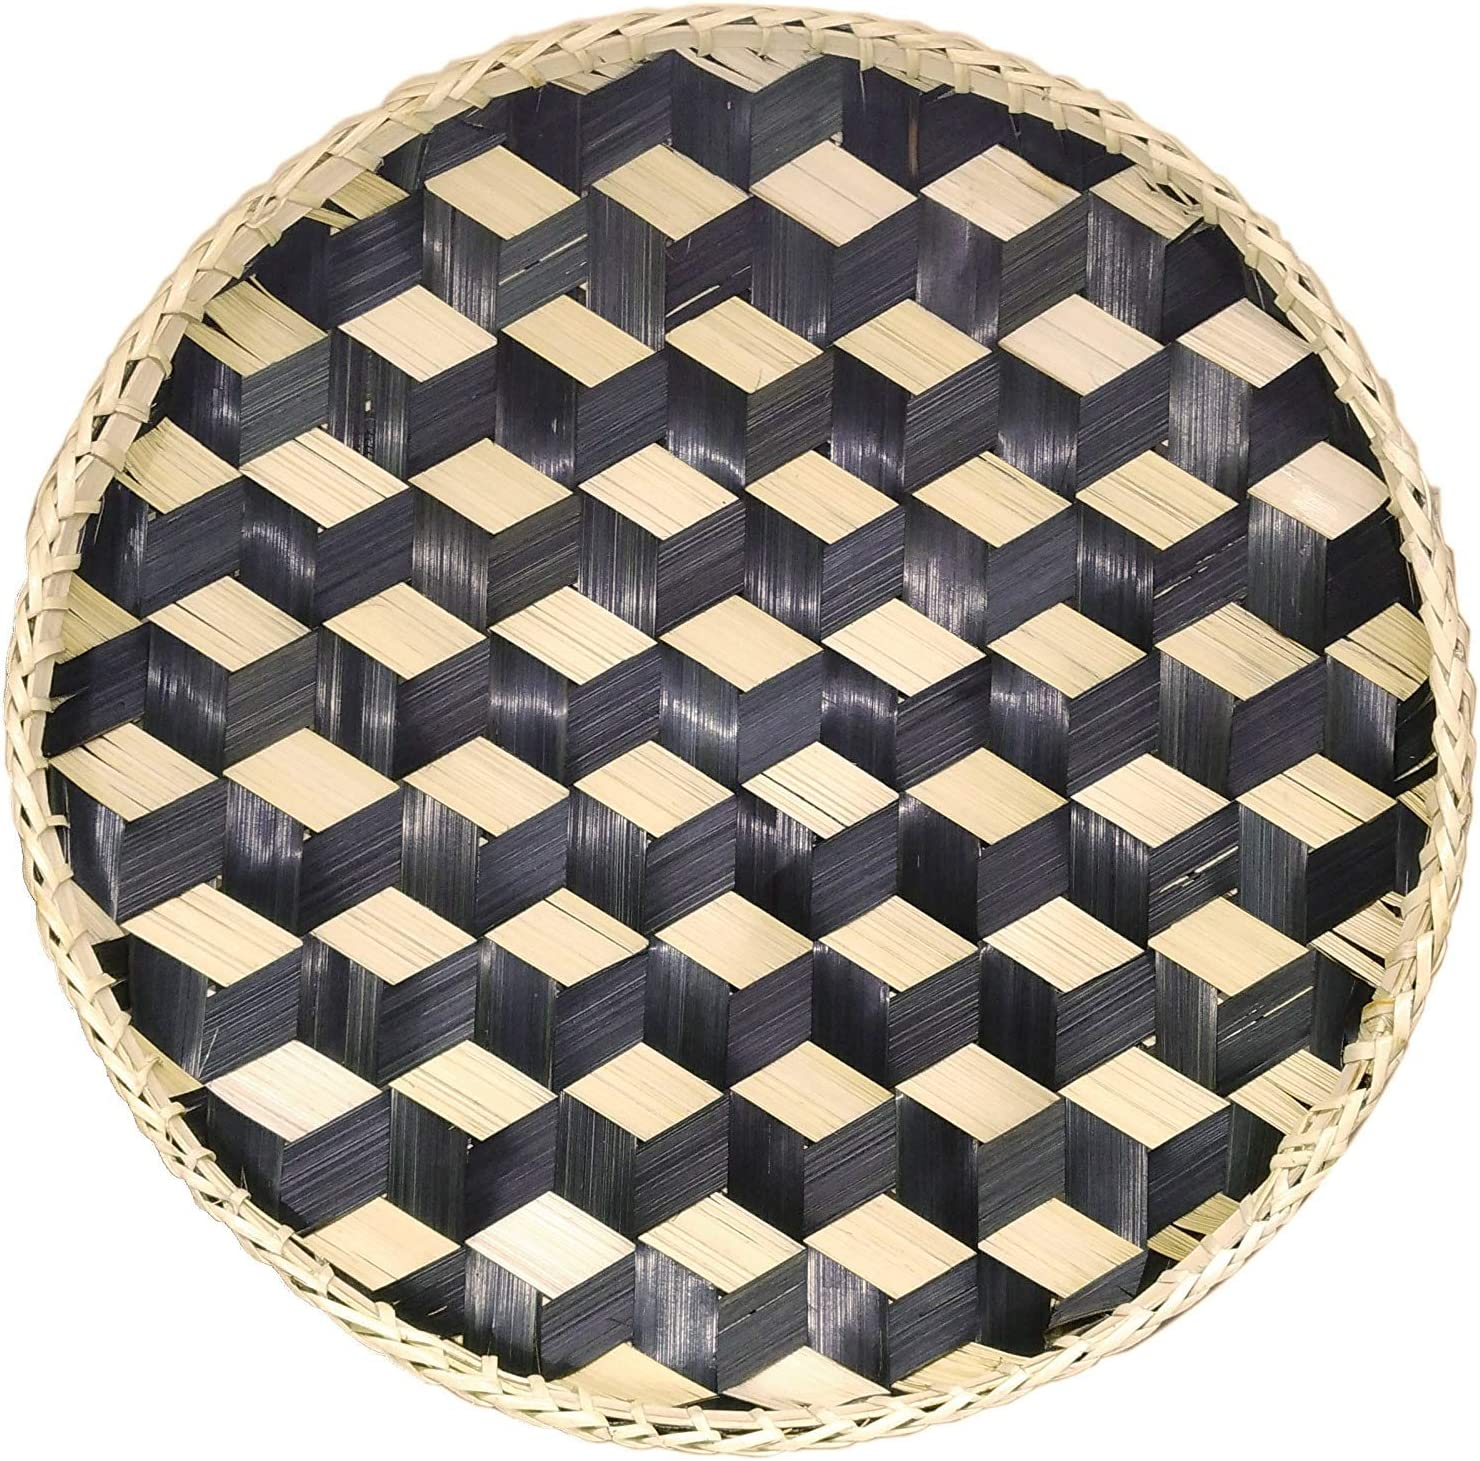 Bamboo Woven Round Basket Tray Rustic Wood Decorative Serving Tray for Breakfast, Drinks, Snack, Coffee Table | Chic Rustic Boho Decor Wall Hanging Home Decoration (Round - Black)